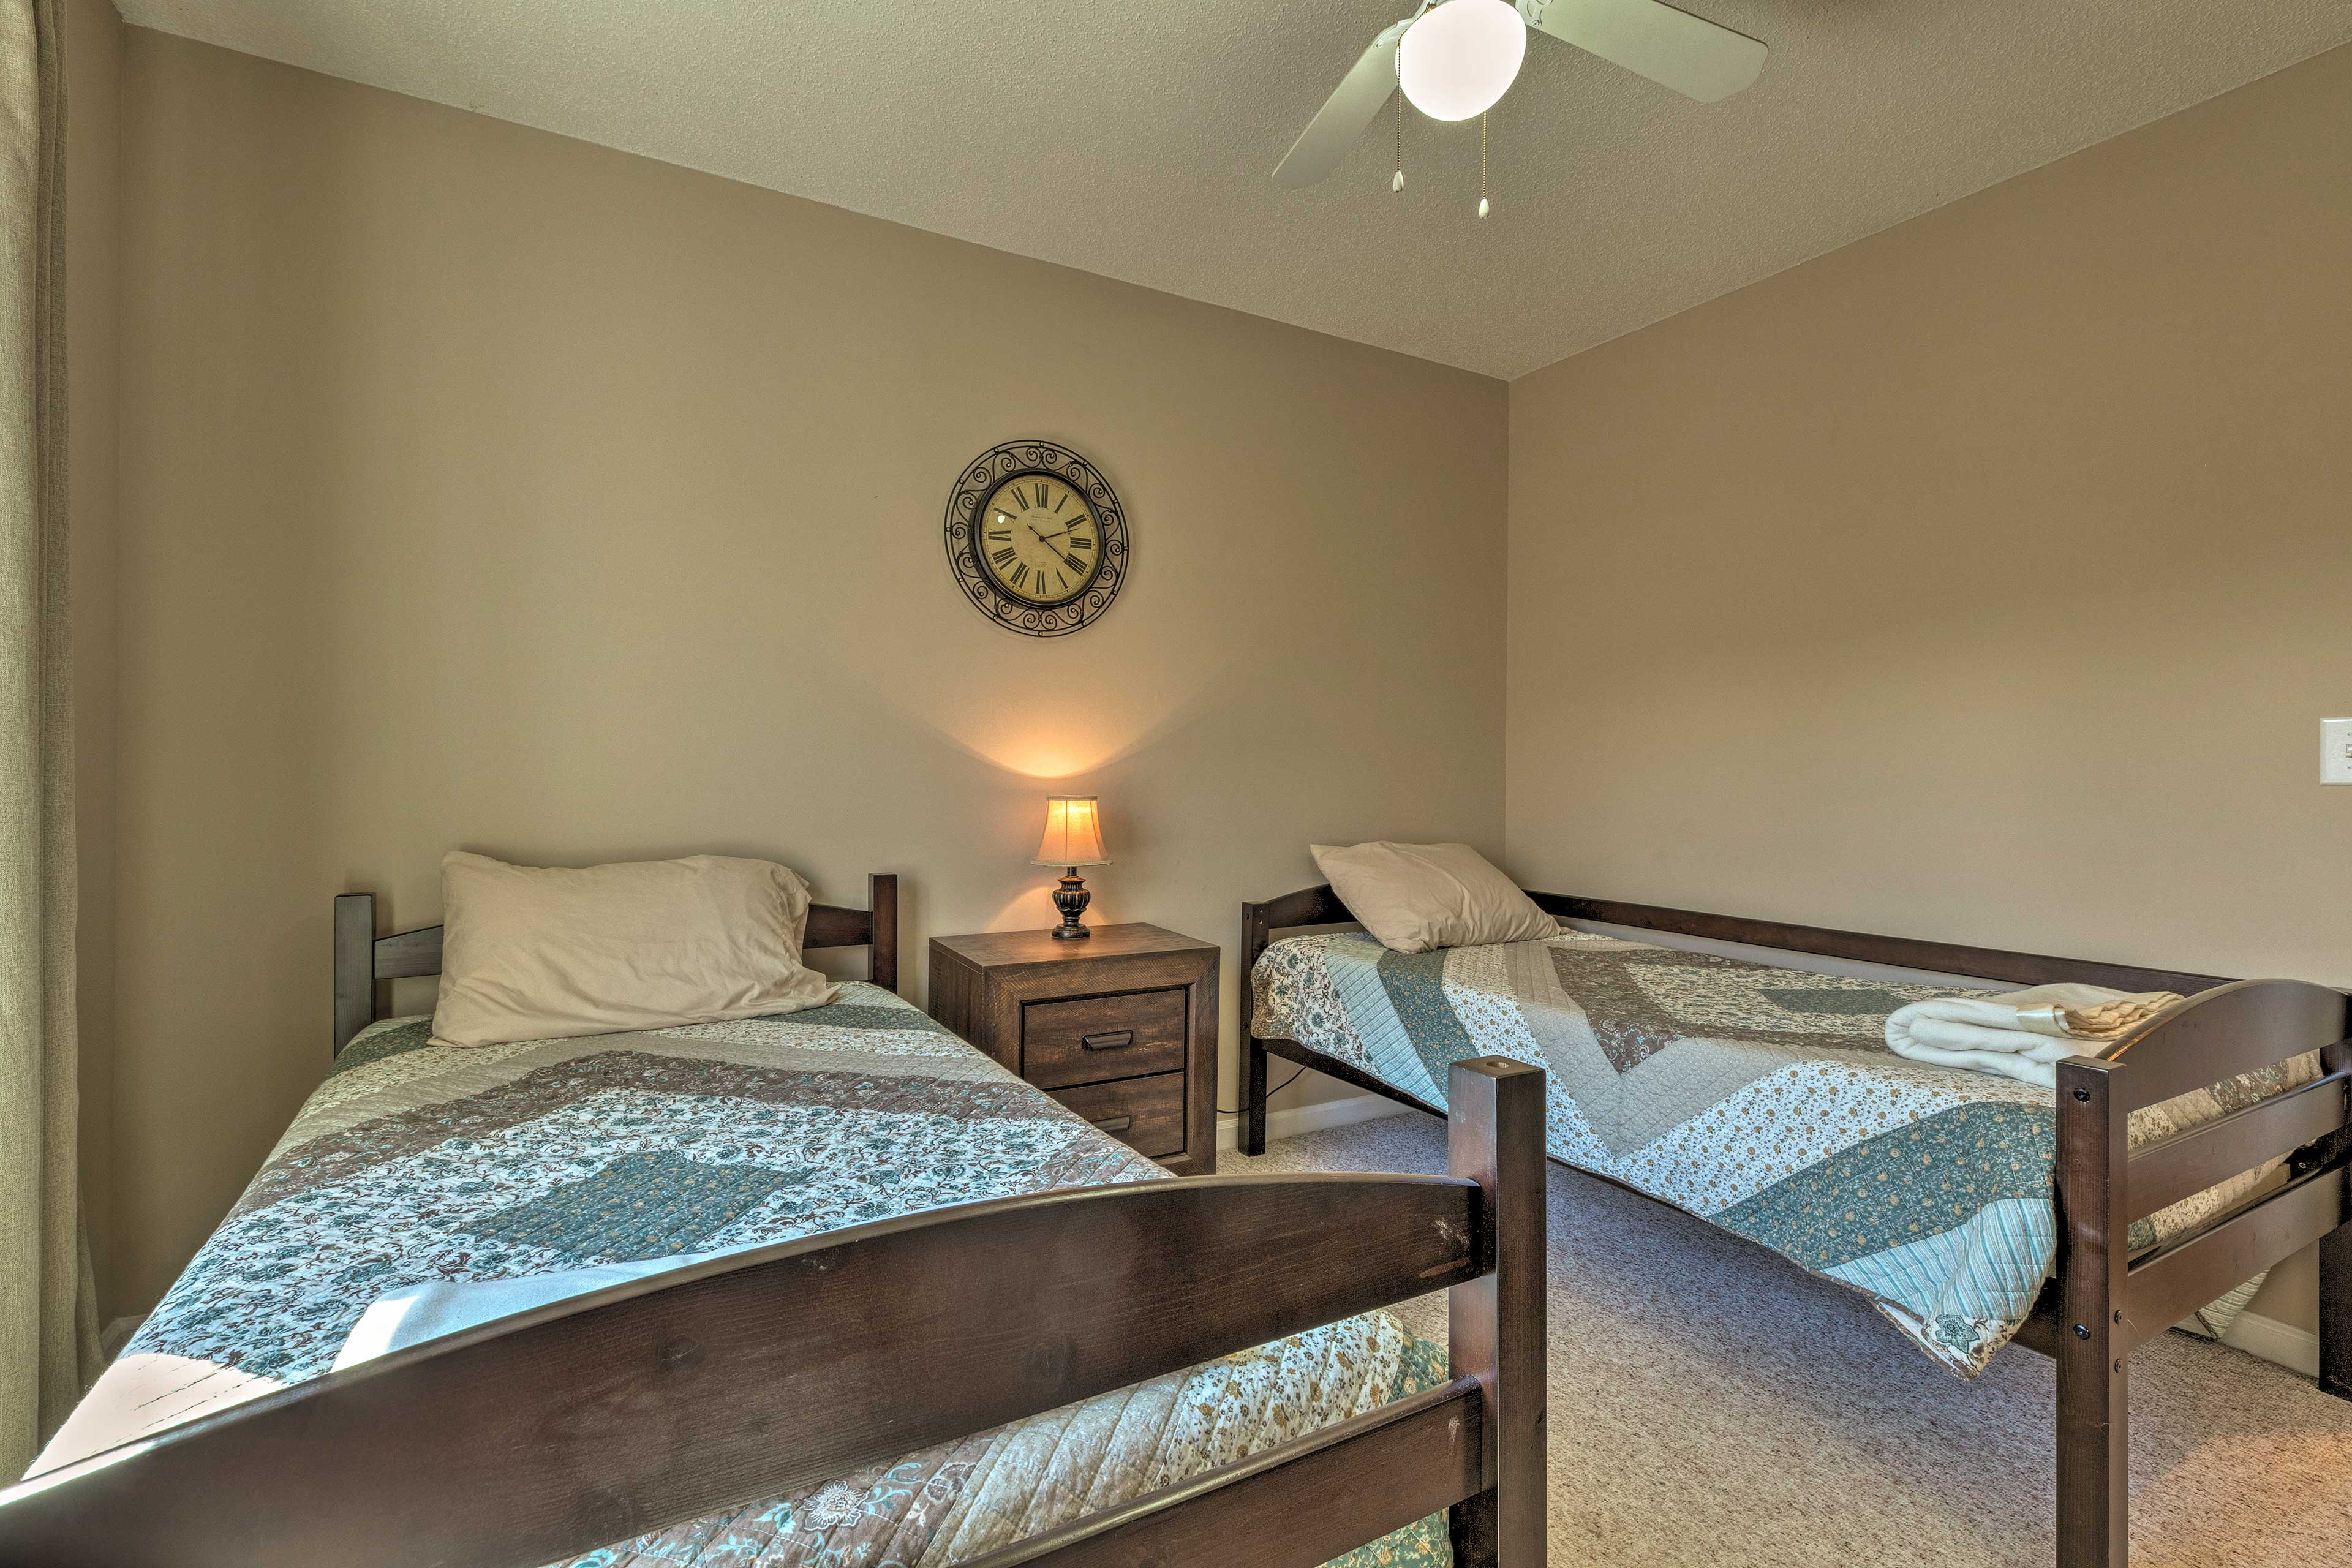 Kids can claim the twin beds!